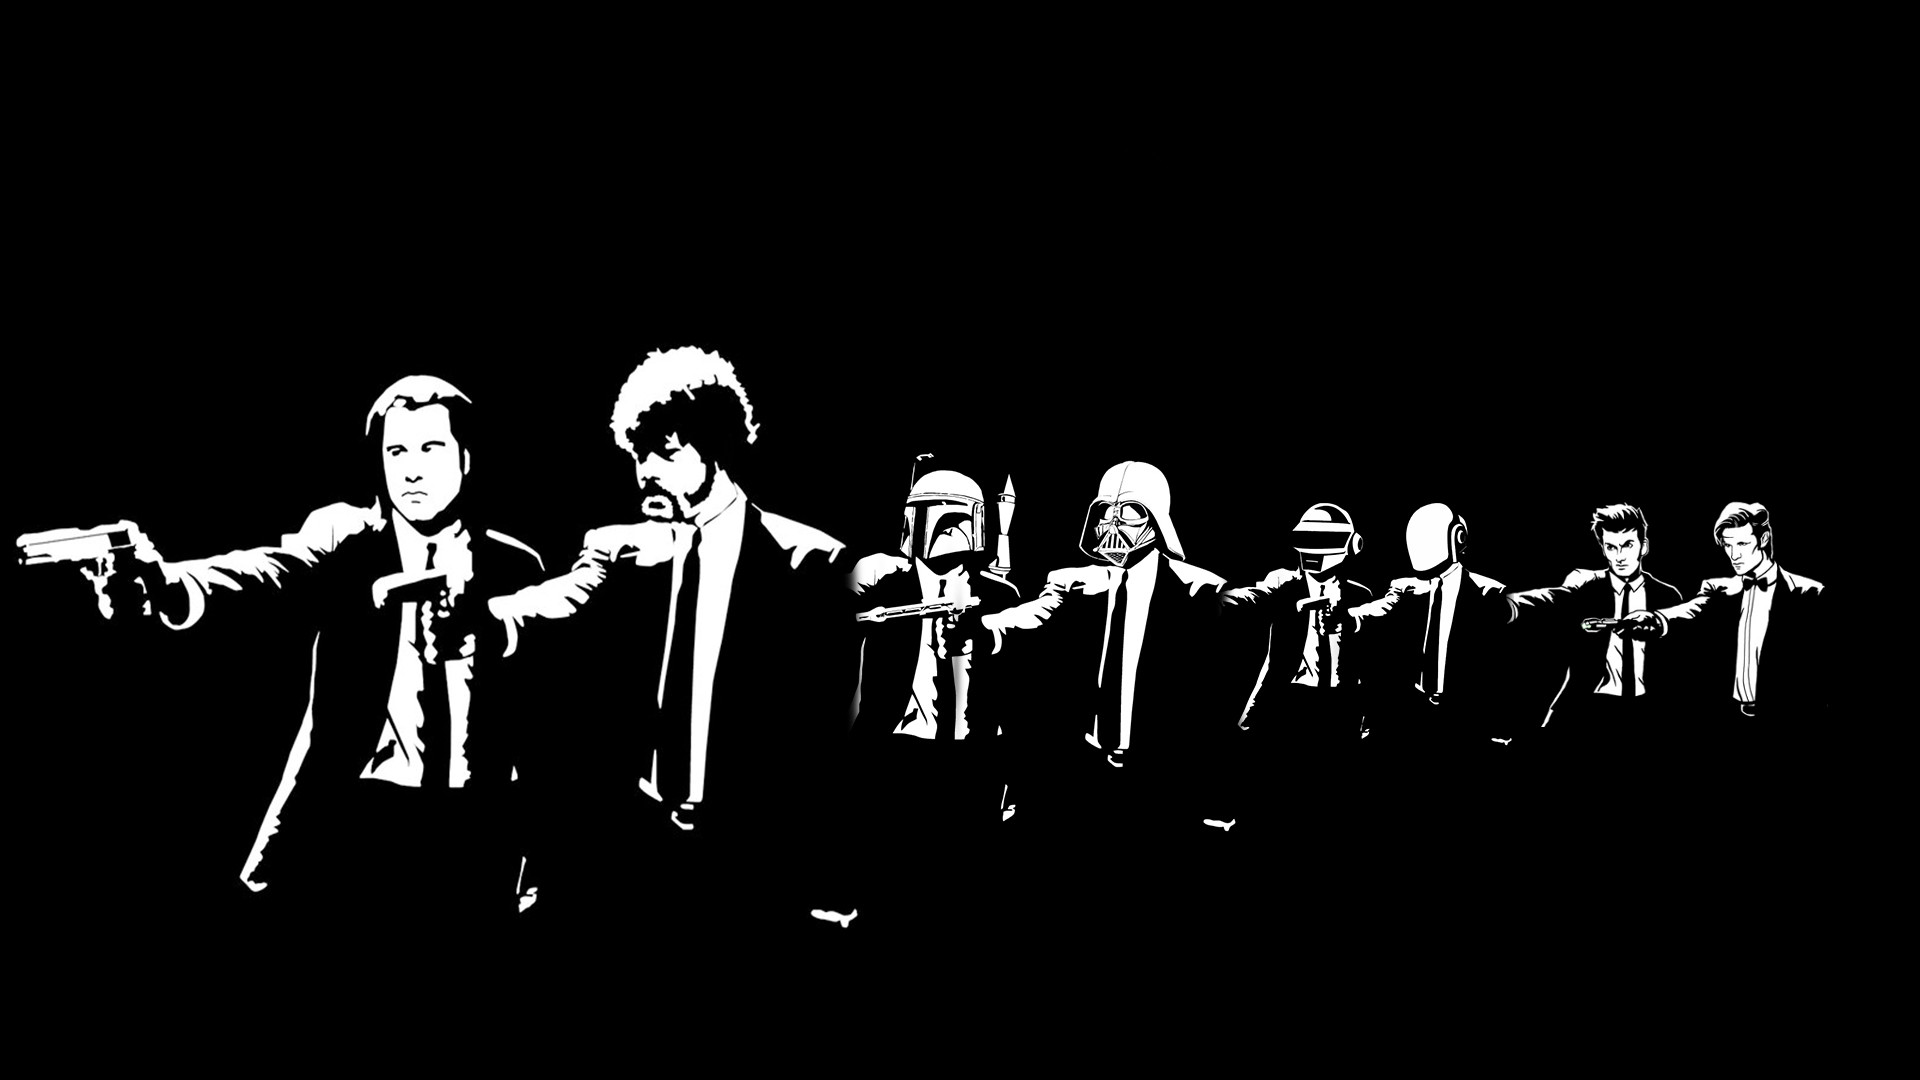 Can someone change this to only Darth Vader and Boba Fett?